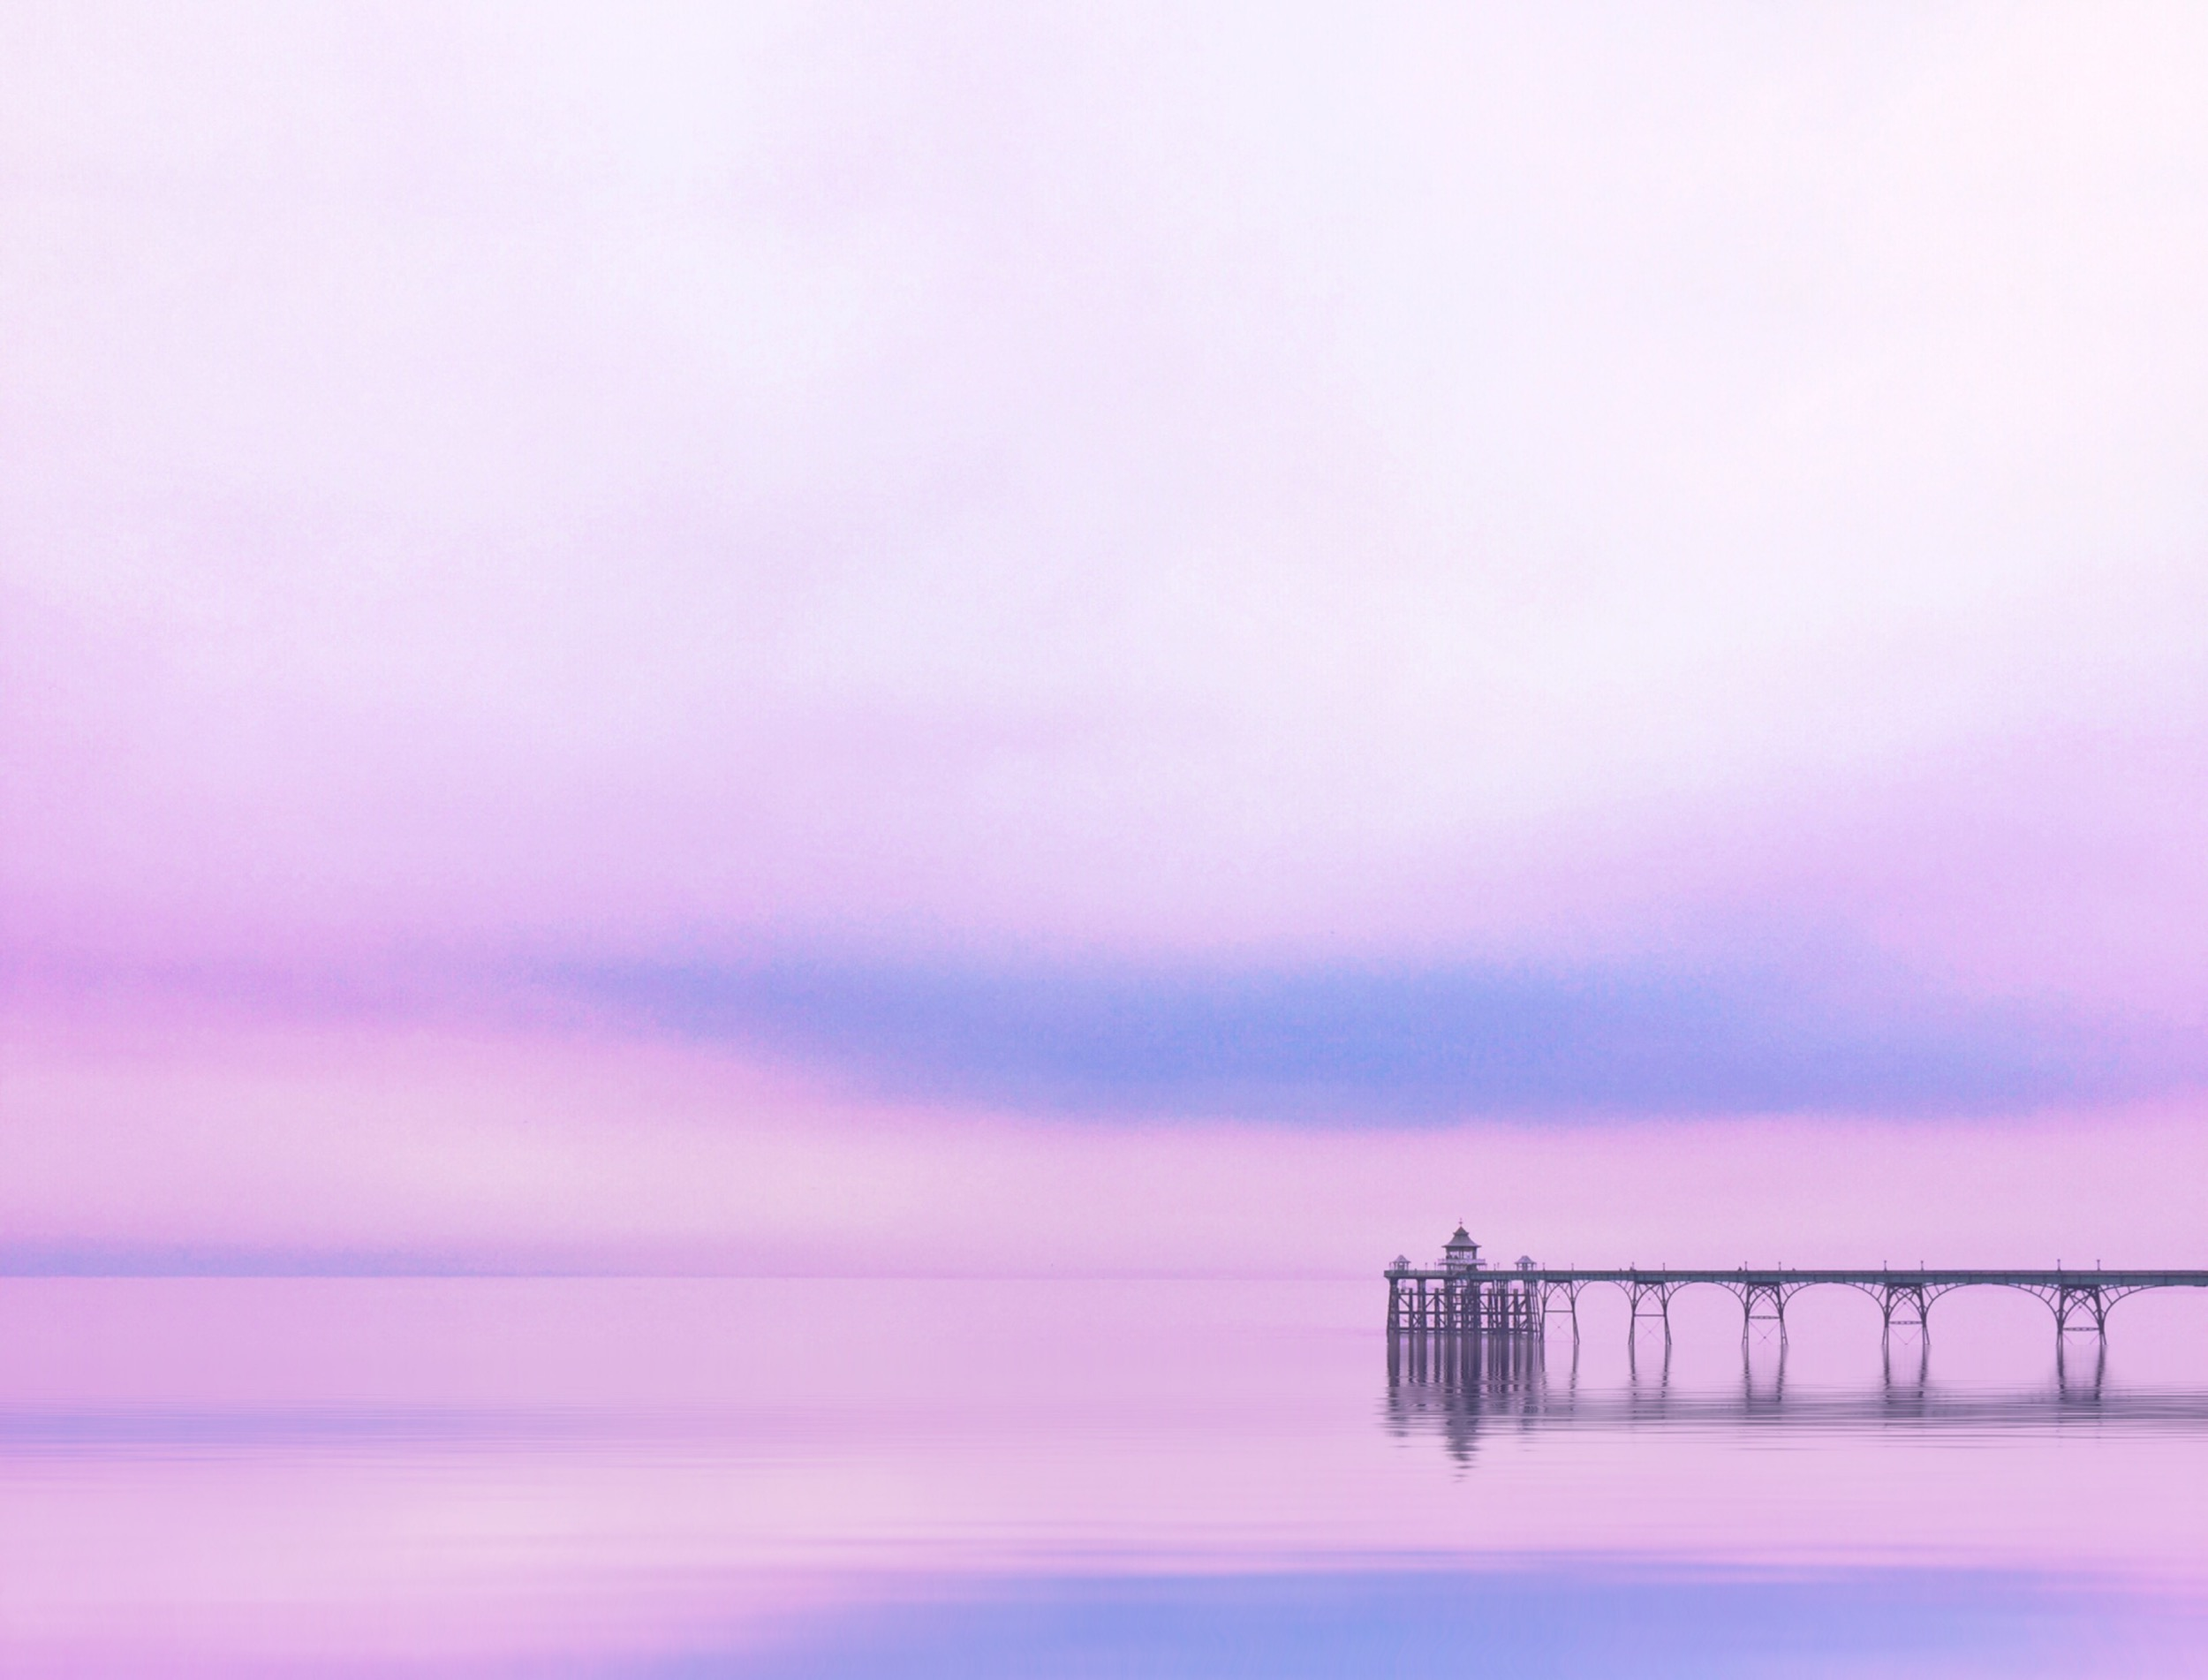 Candy minimal shot of a Victorian Pier taken on iPhone, in Clevedon, UK